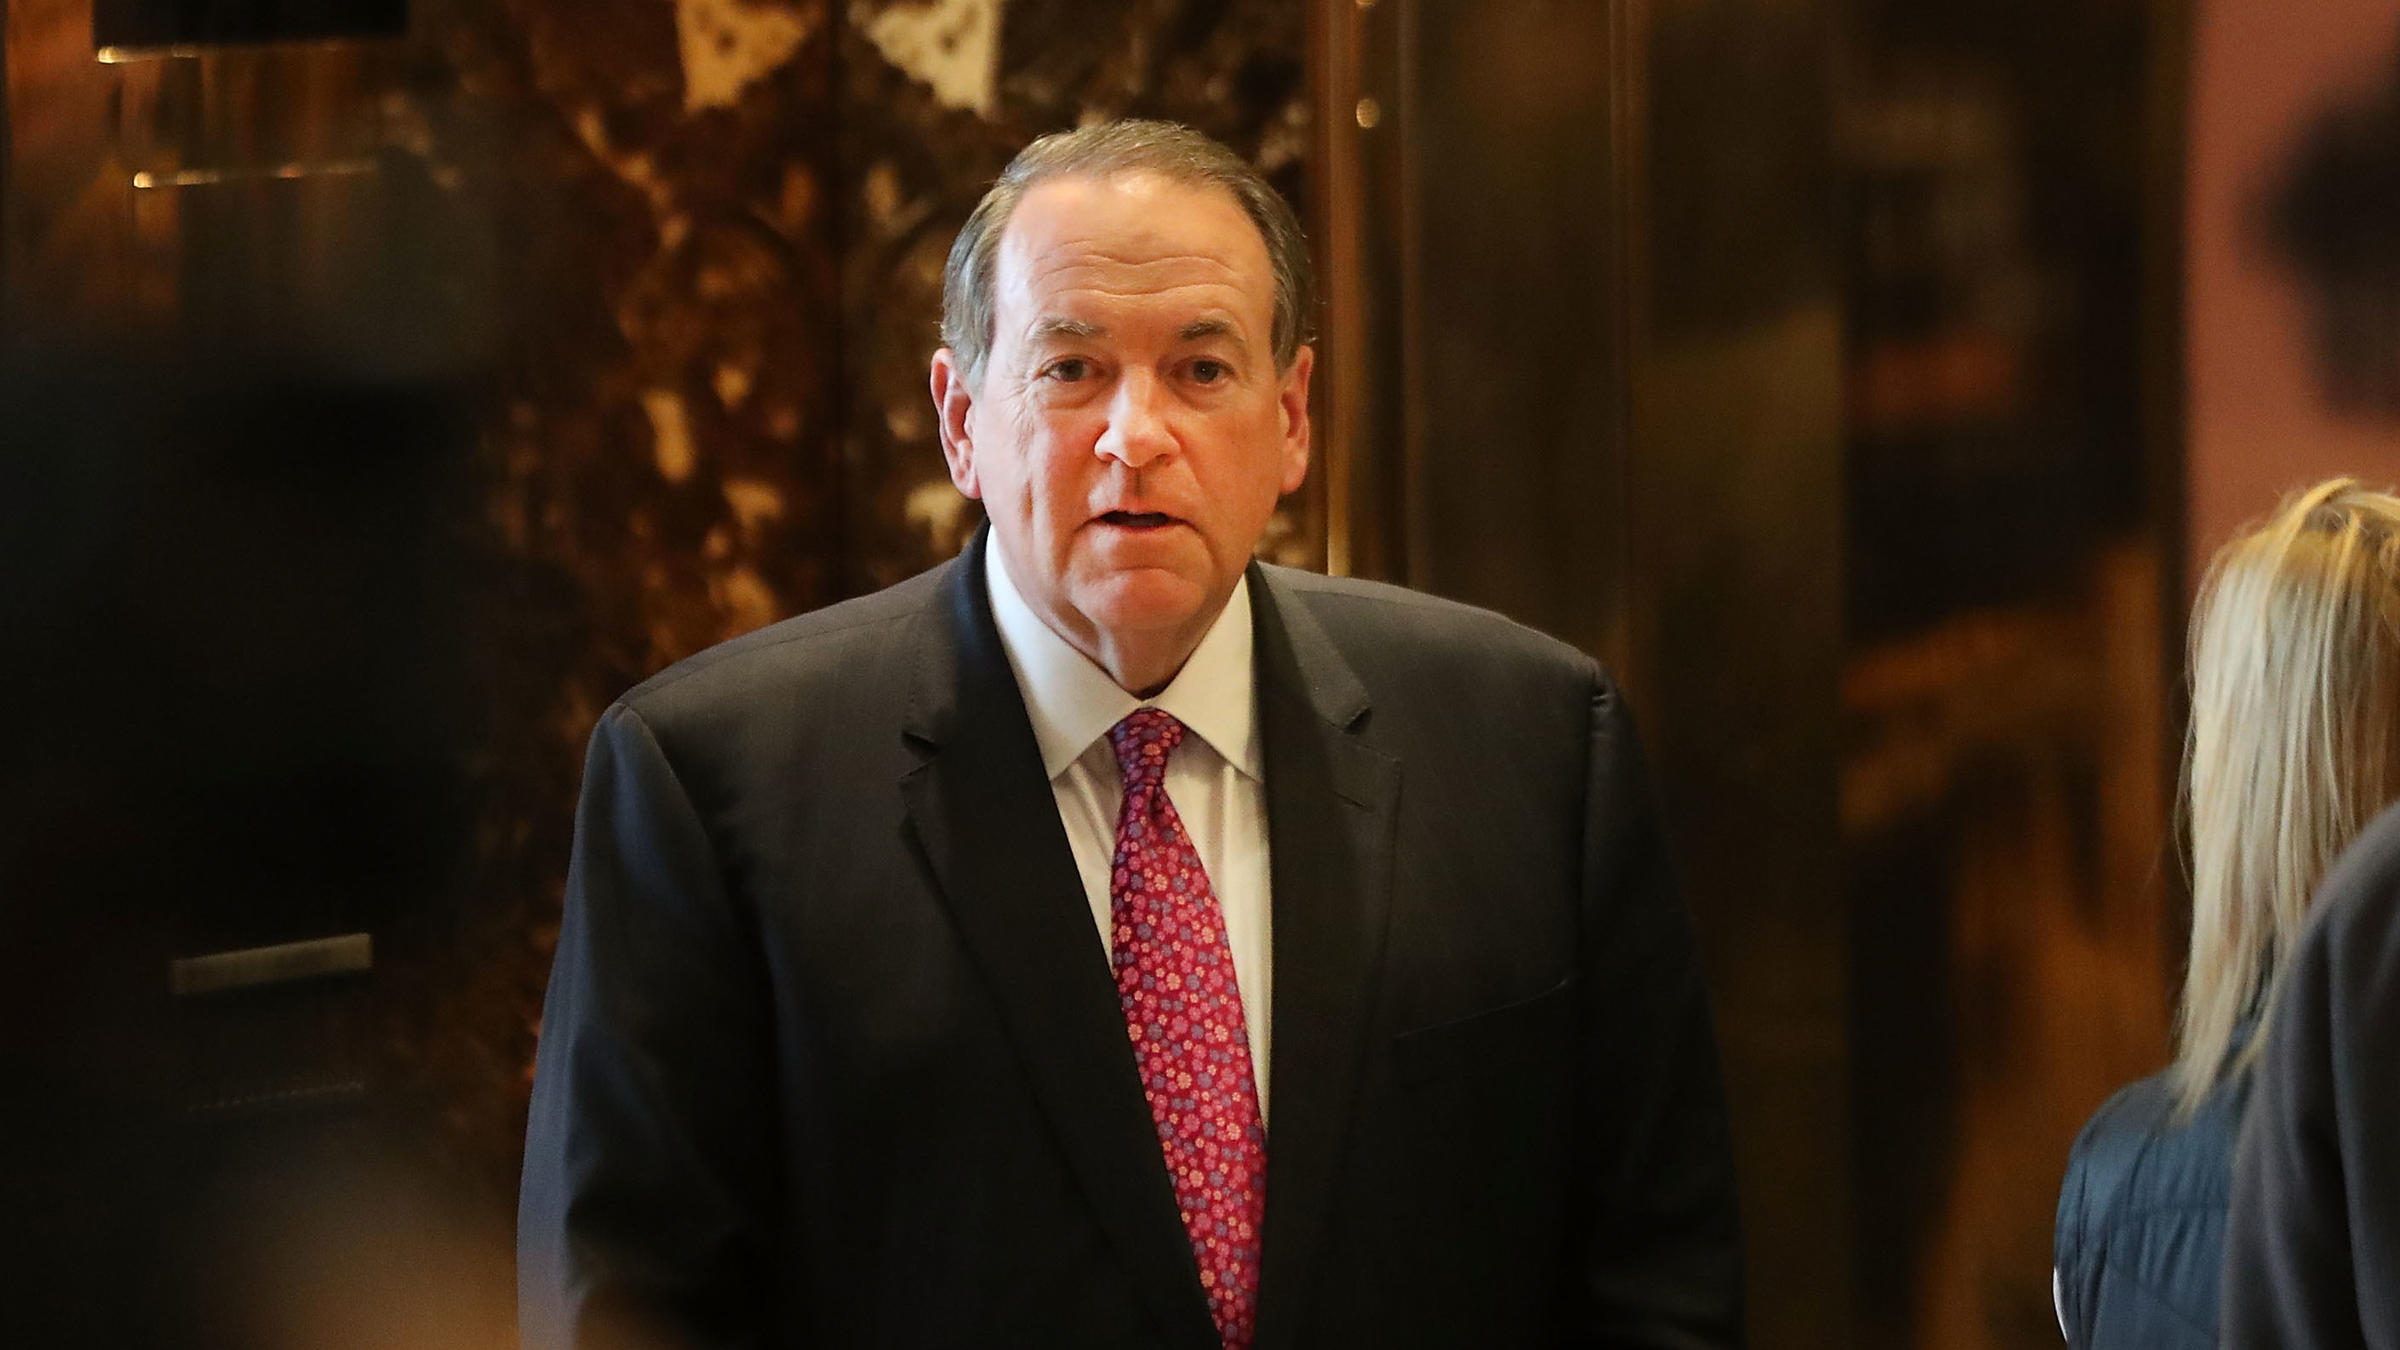 Former Arkansas Governor Mike Huckabee Resigns From Country Music Association Board